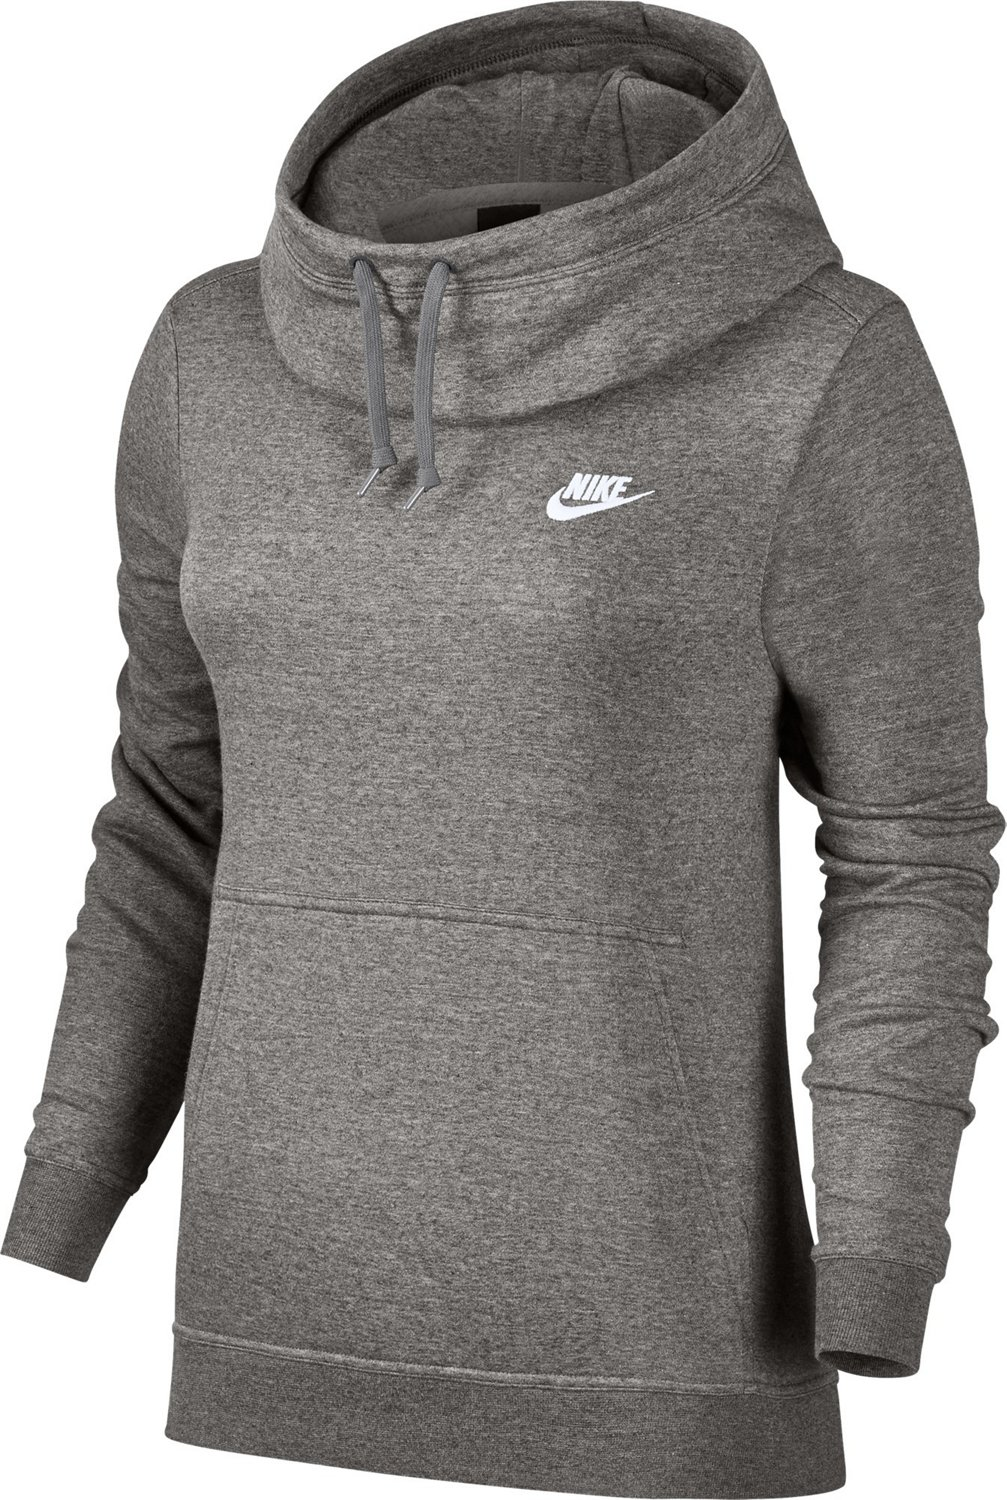 Display product reviews for Nike Women s Sportswear Funnel Neck Hoodie c42df807b7